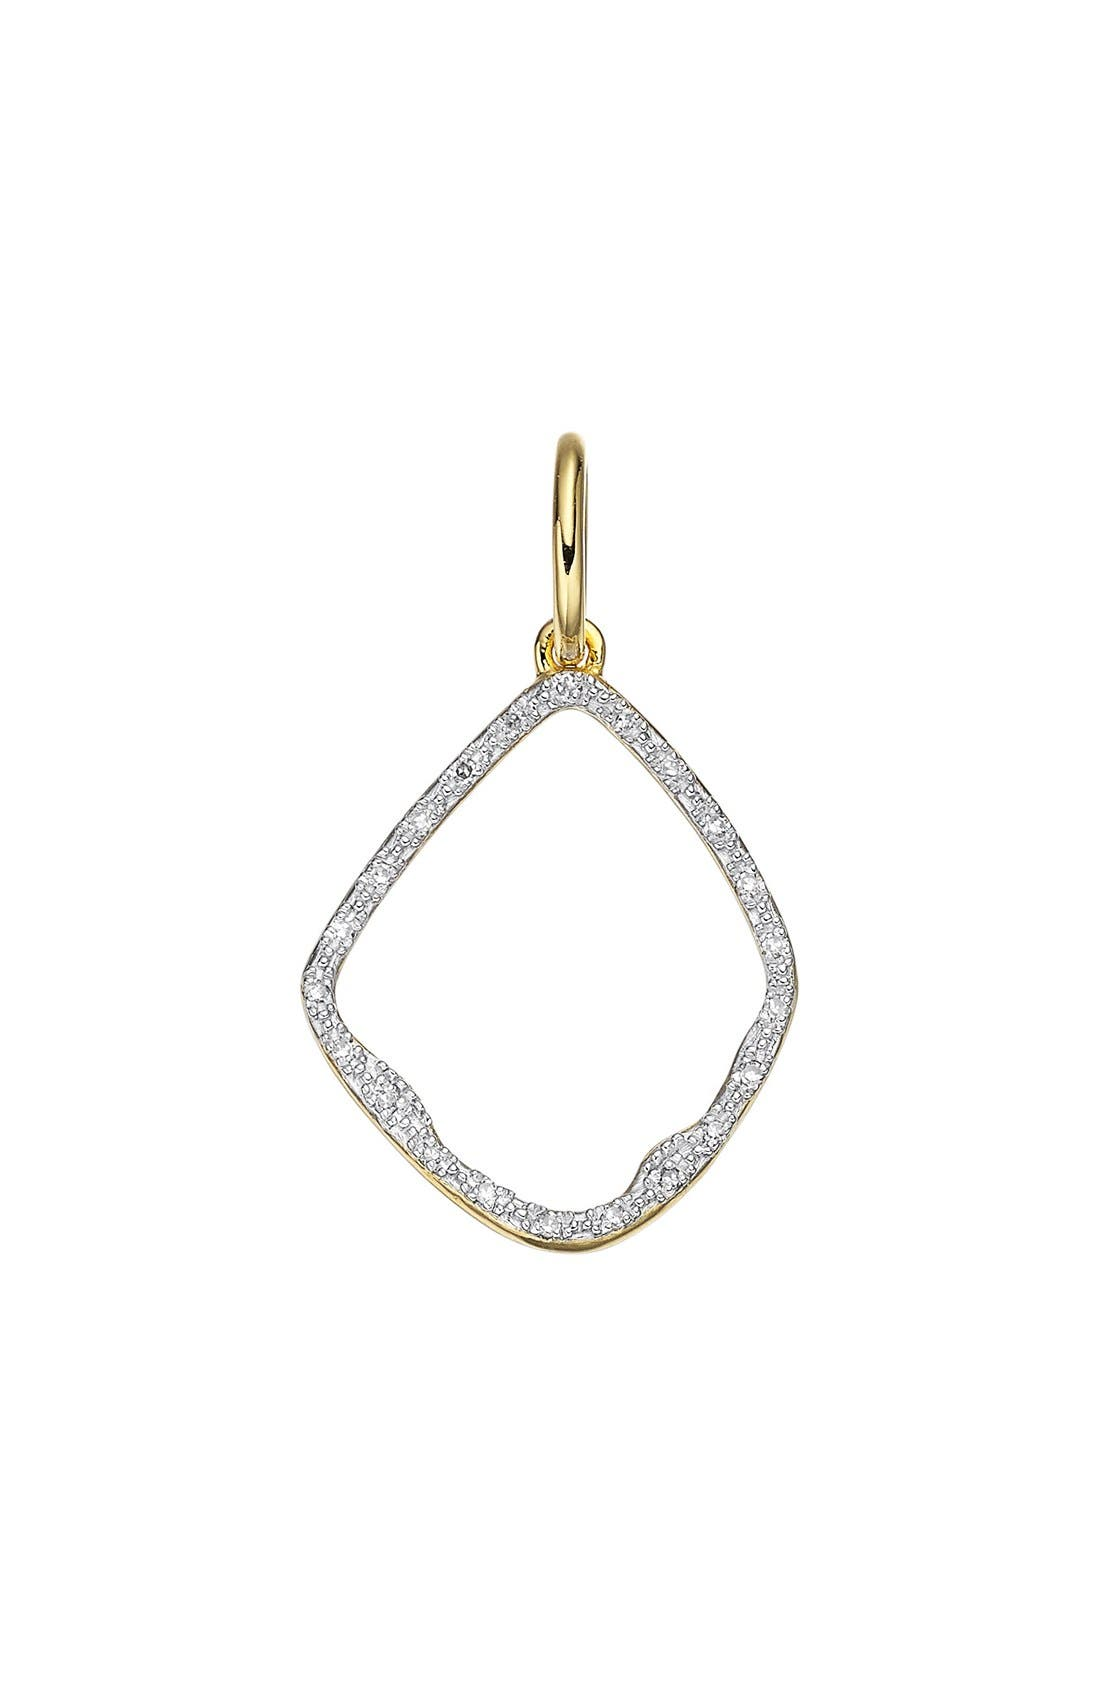 Monica Vinader Accessories RIVA DIAMOND HOOP PENDANT CHARM